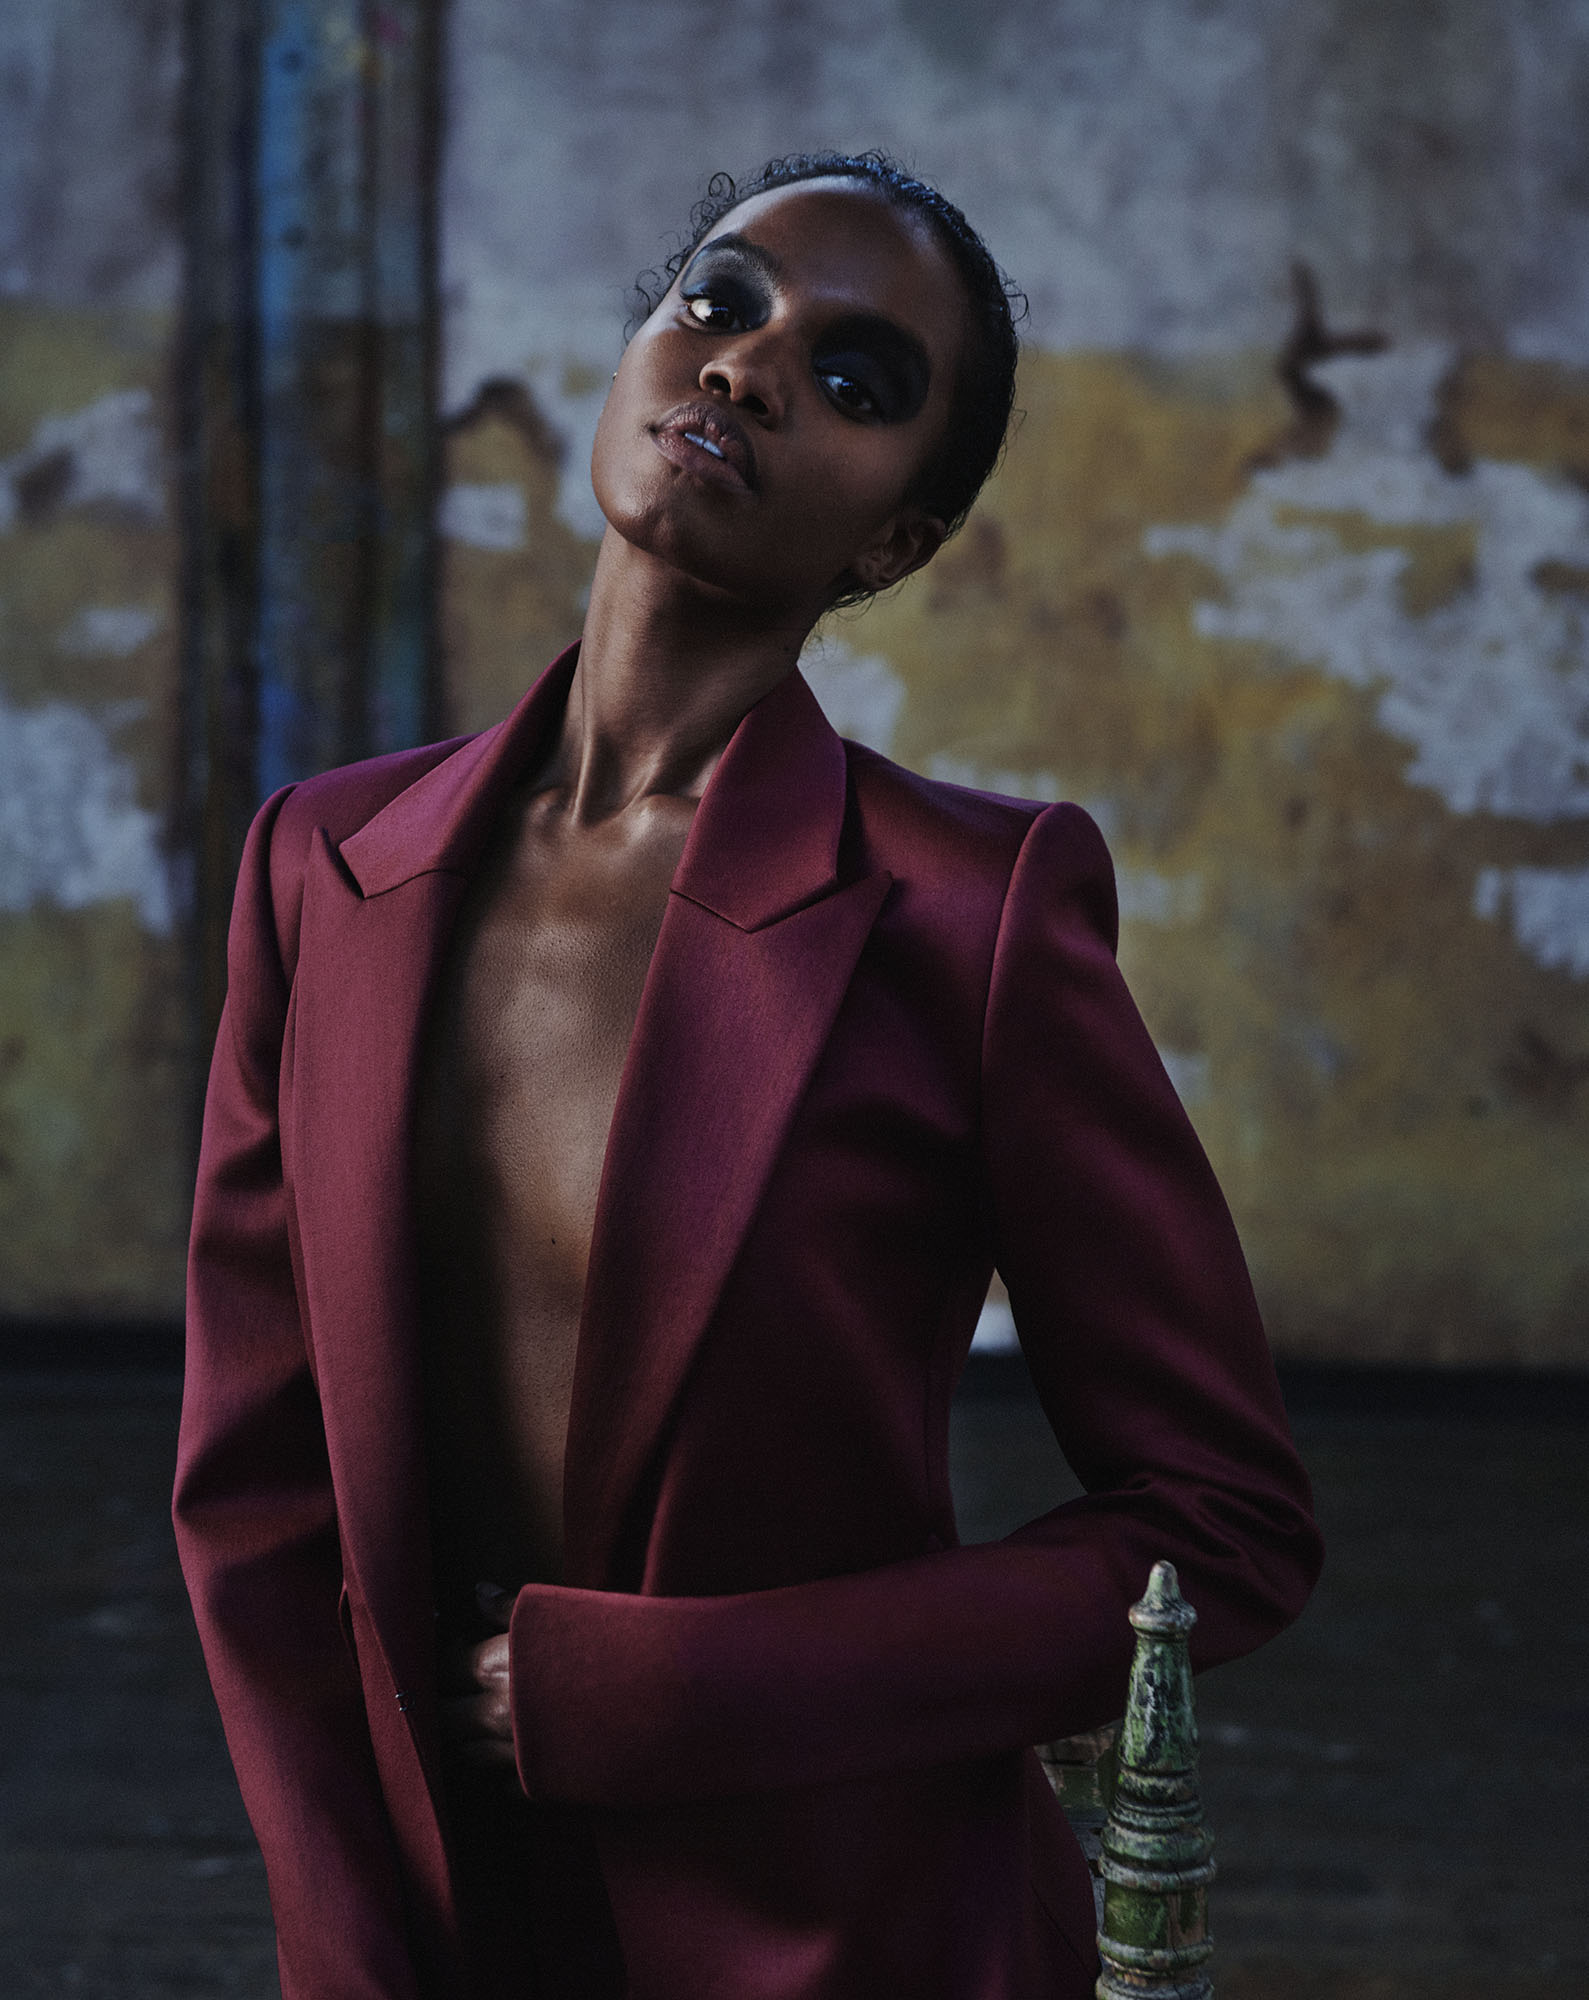 DUNCAN reignites its love affair with New York City for Fall/Winter 2021